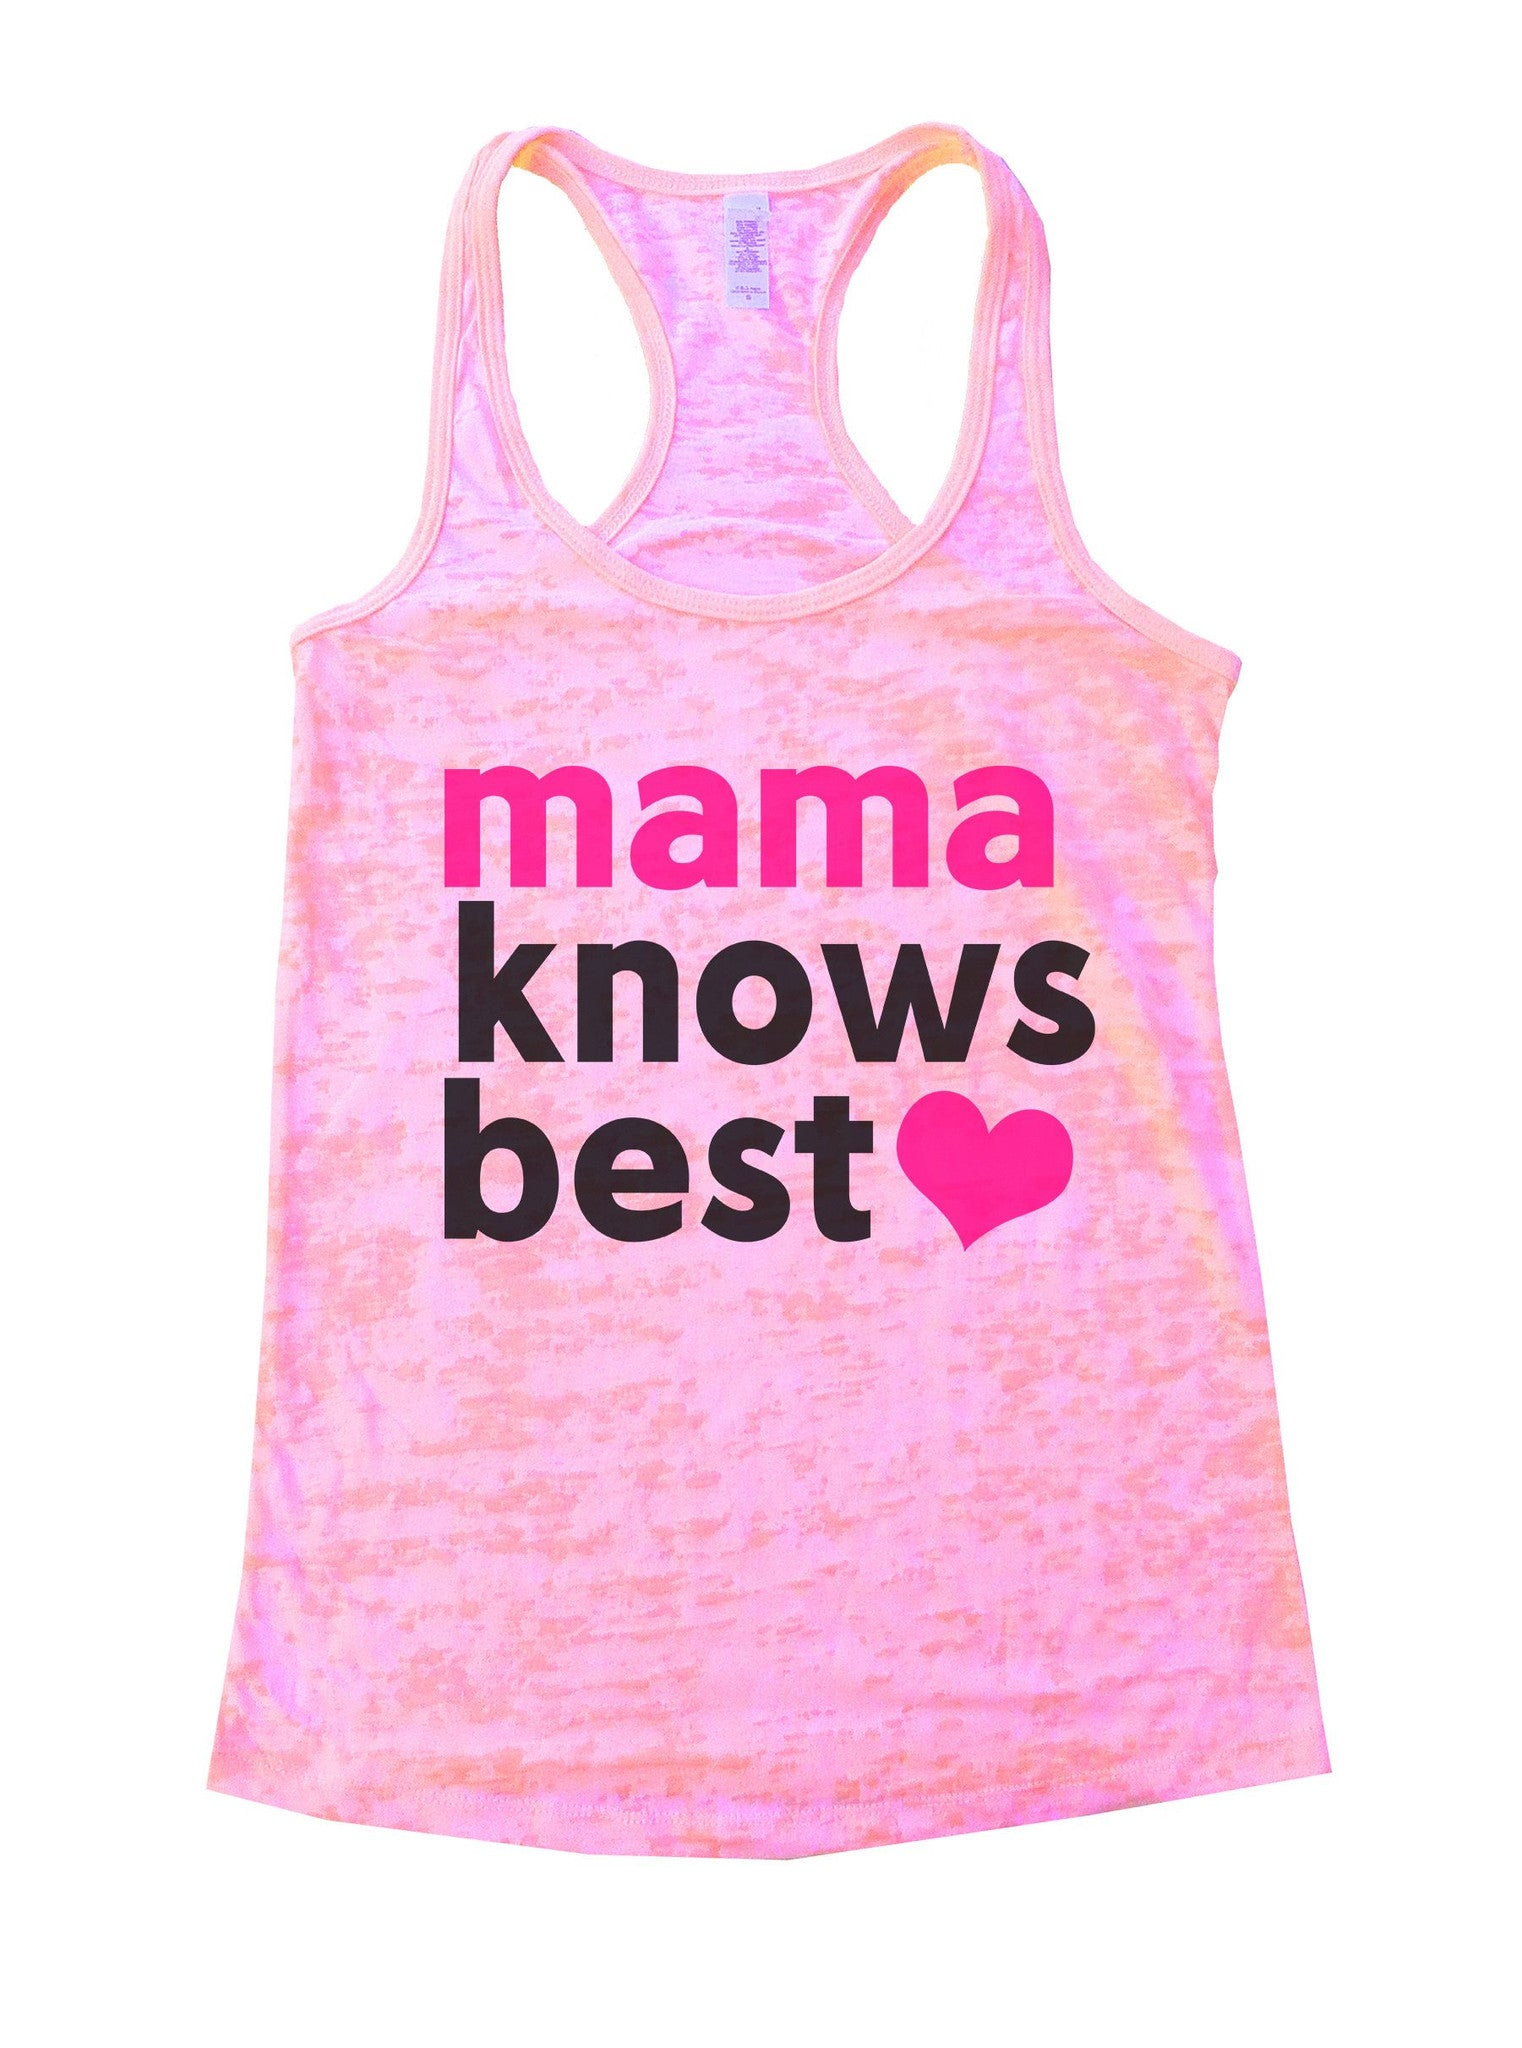 Mama Knows Best Burnout Tank Top By BurnoutTankTops.com - 1077 - Funny Shirts Tank Tops Burnouts and Triblends  - 2